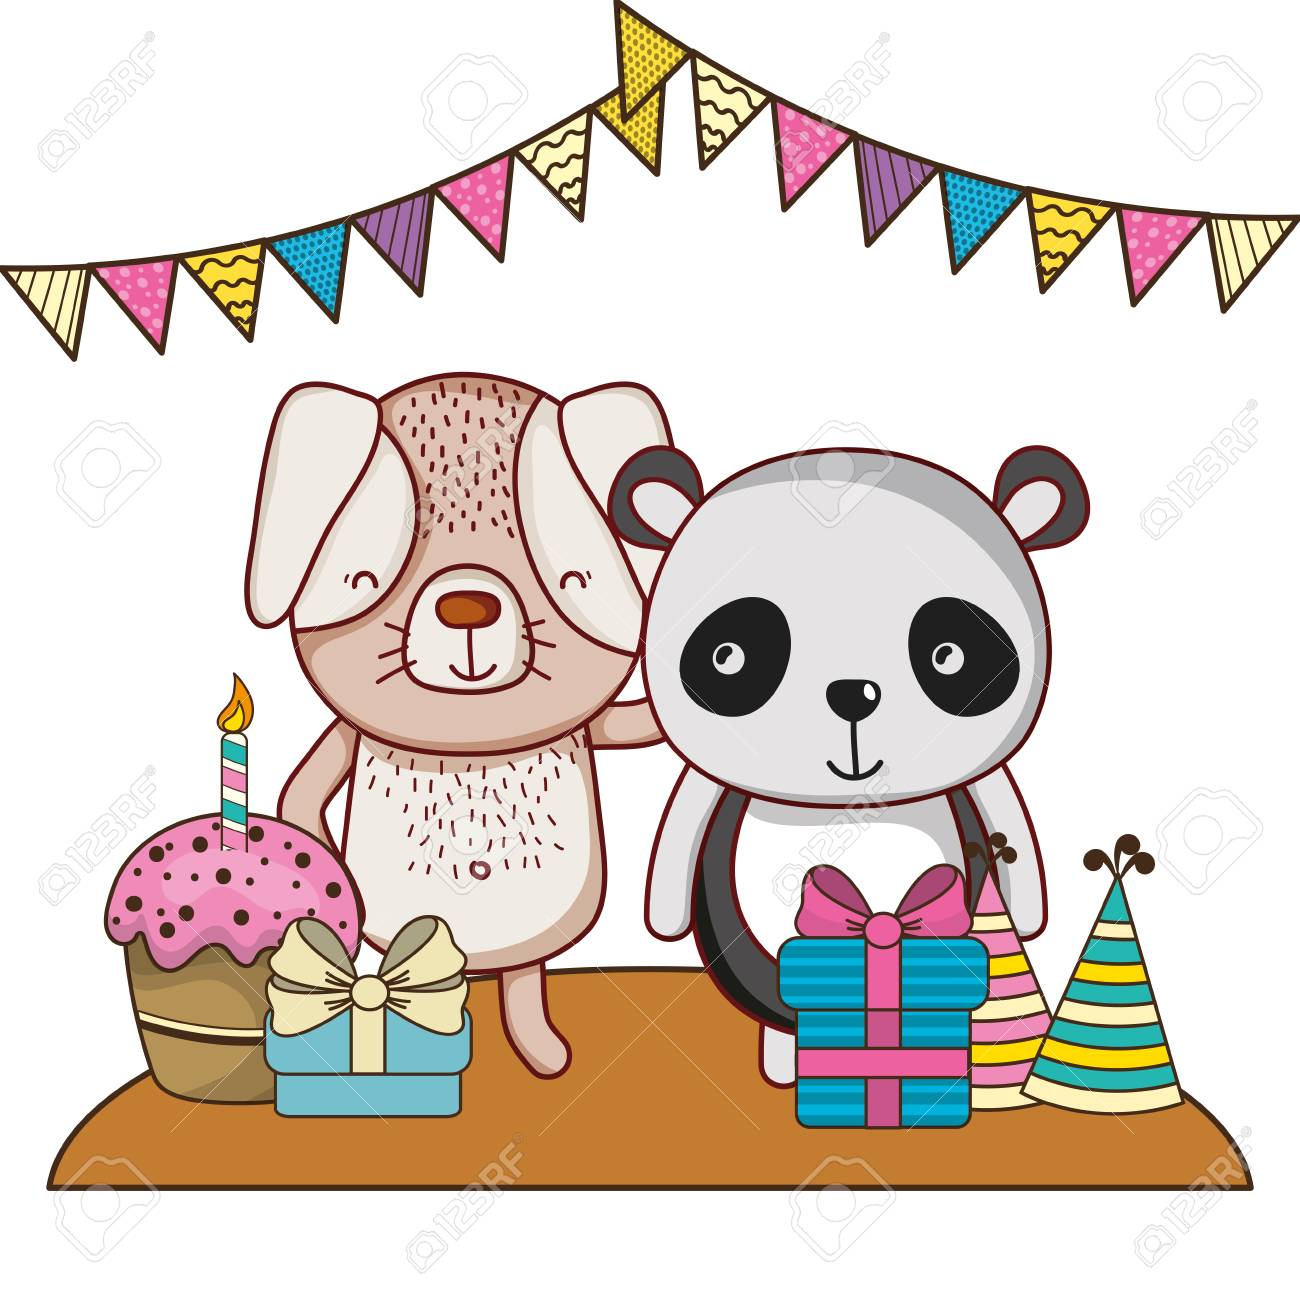 Happy Birthday Cute Animals With Presents Cartoons Vector